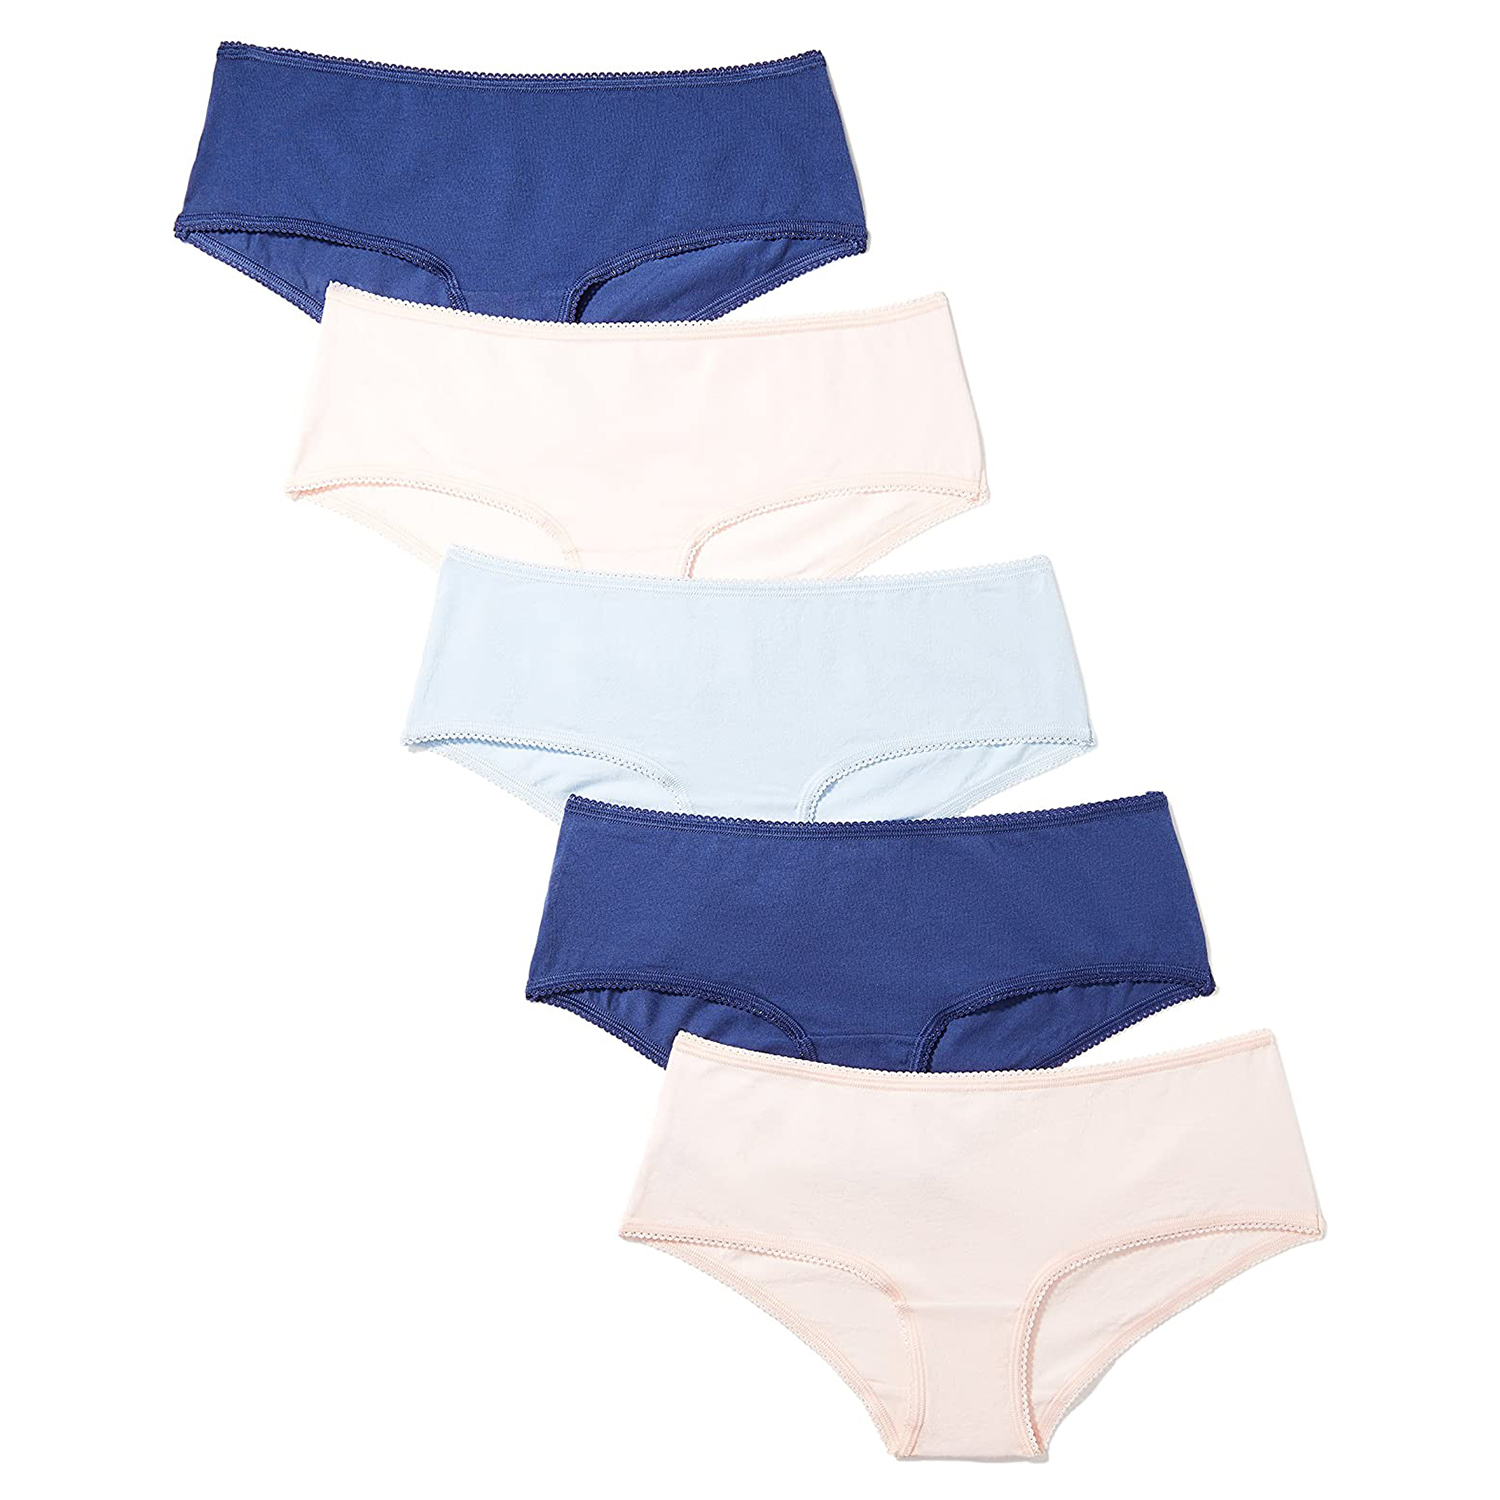 Iris and Lilly Cheeky Hipster Underwear Five-Pack